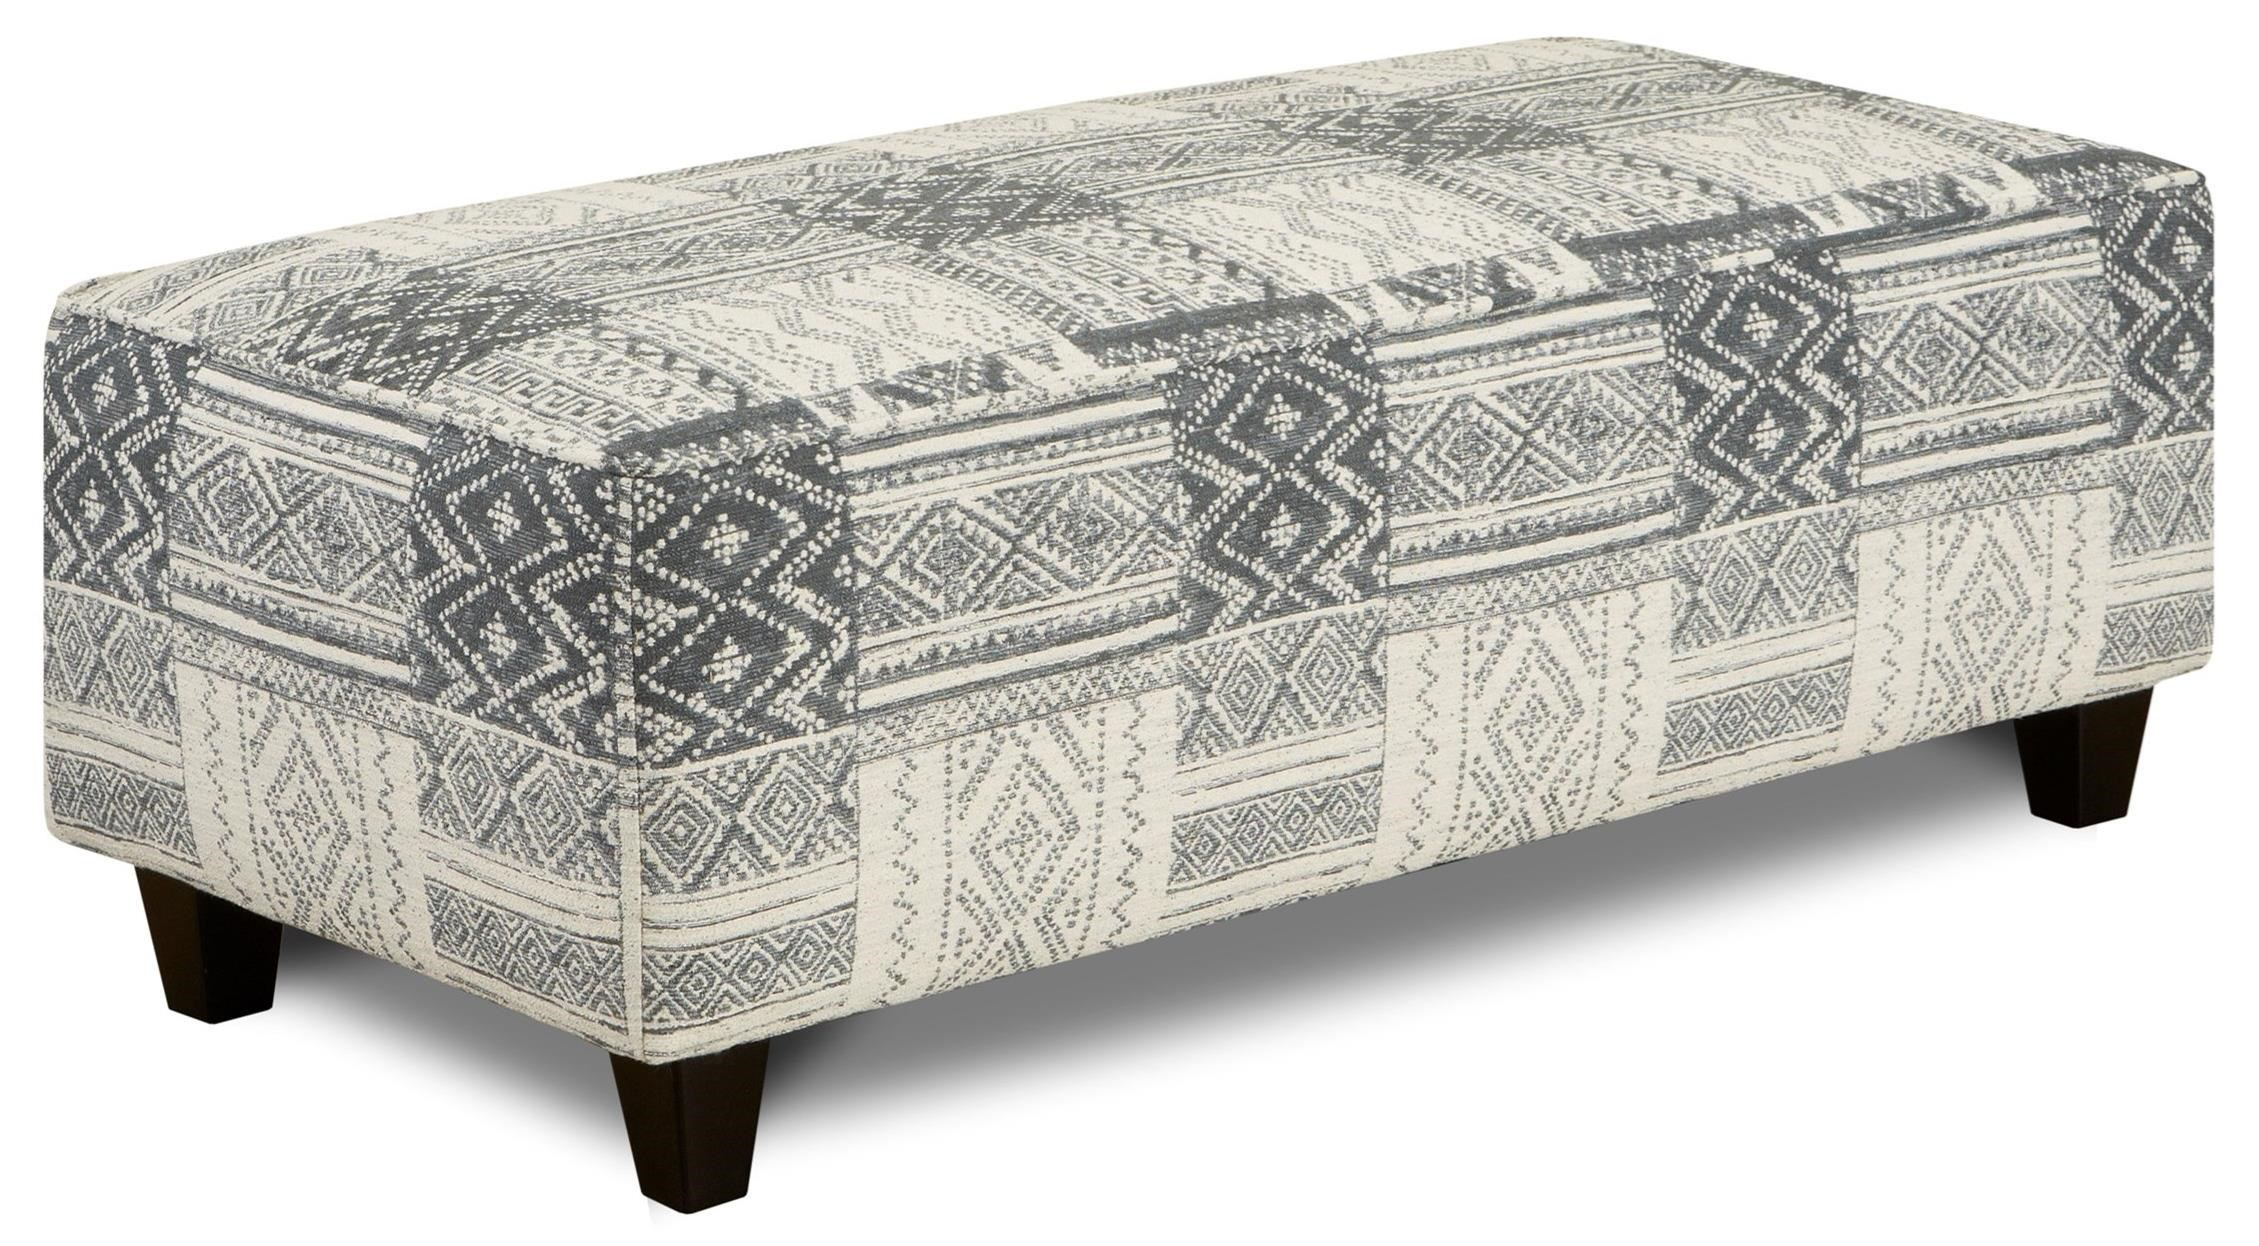 100 Ottoman by FN at Lindy's Furniture Company